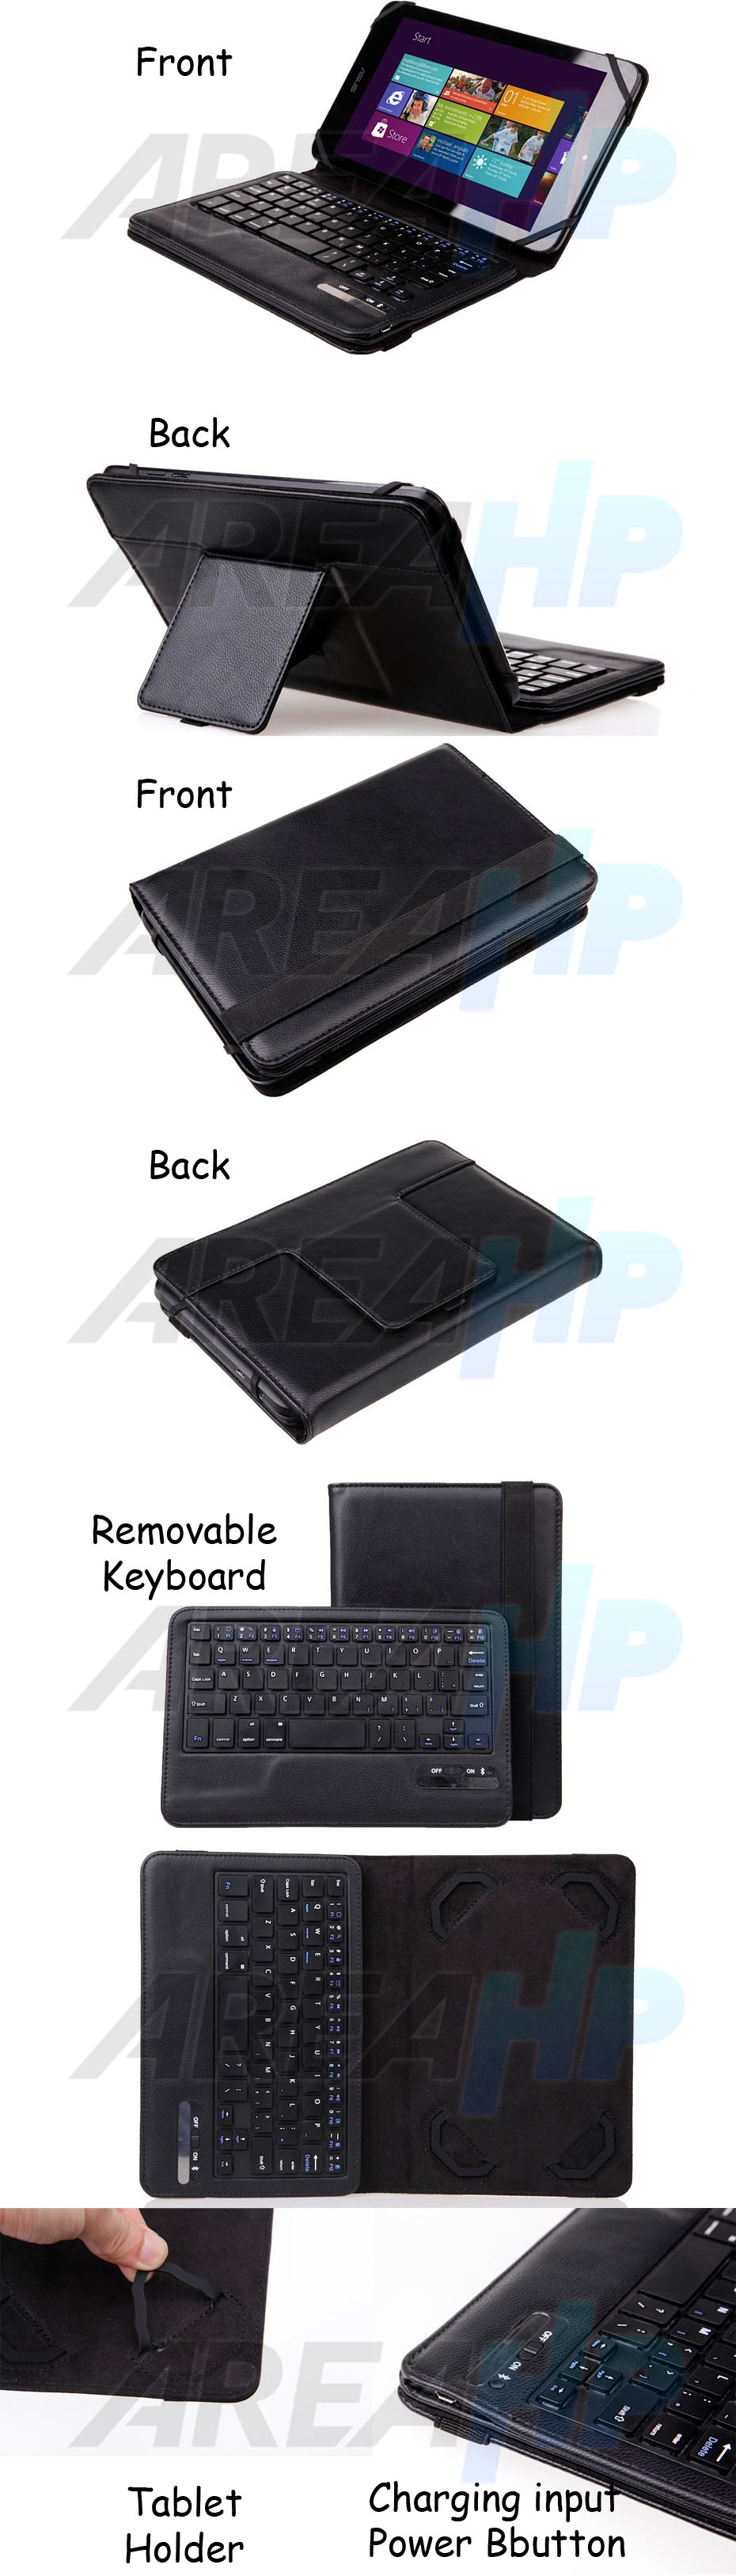 Seenda Universal Keyboard Bluetooth Case for Tablet 9-10 Inch Overview